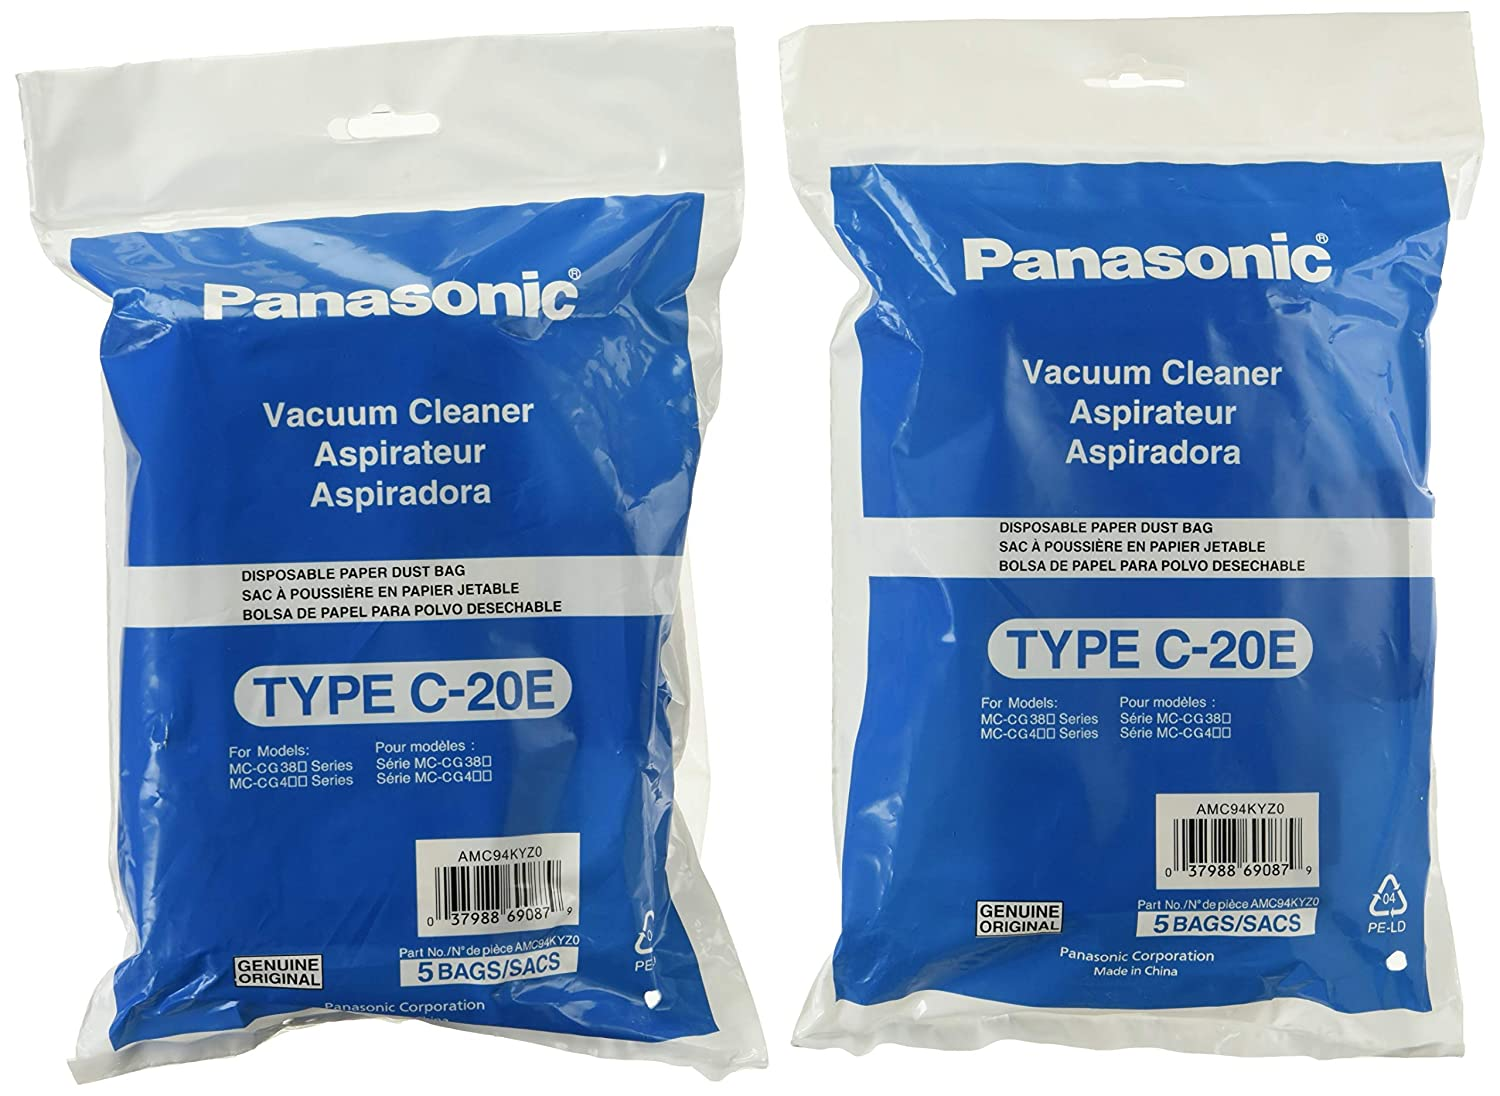 Panasonic AMC94KYZ0 Type C-20E Canister Vacuum Bags (10 Bags)